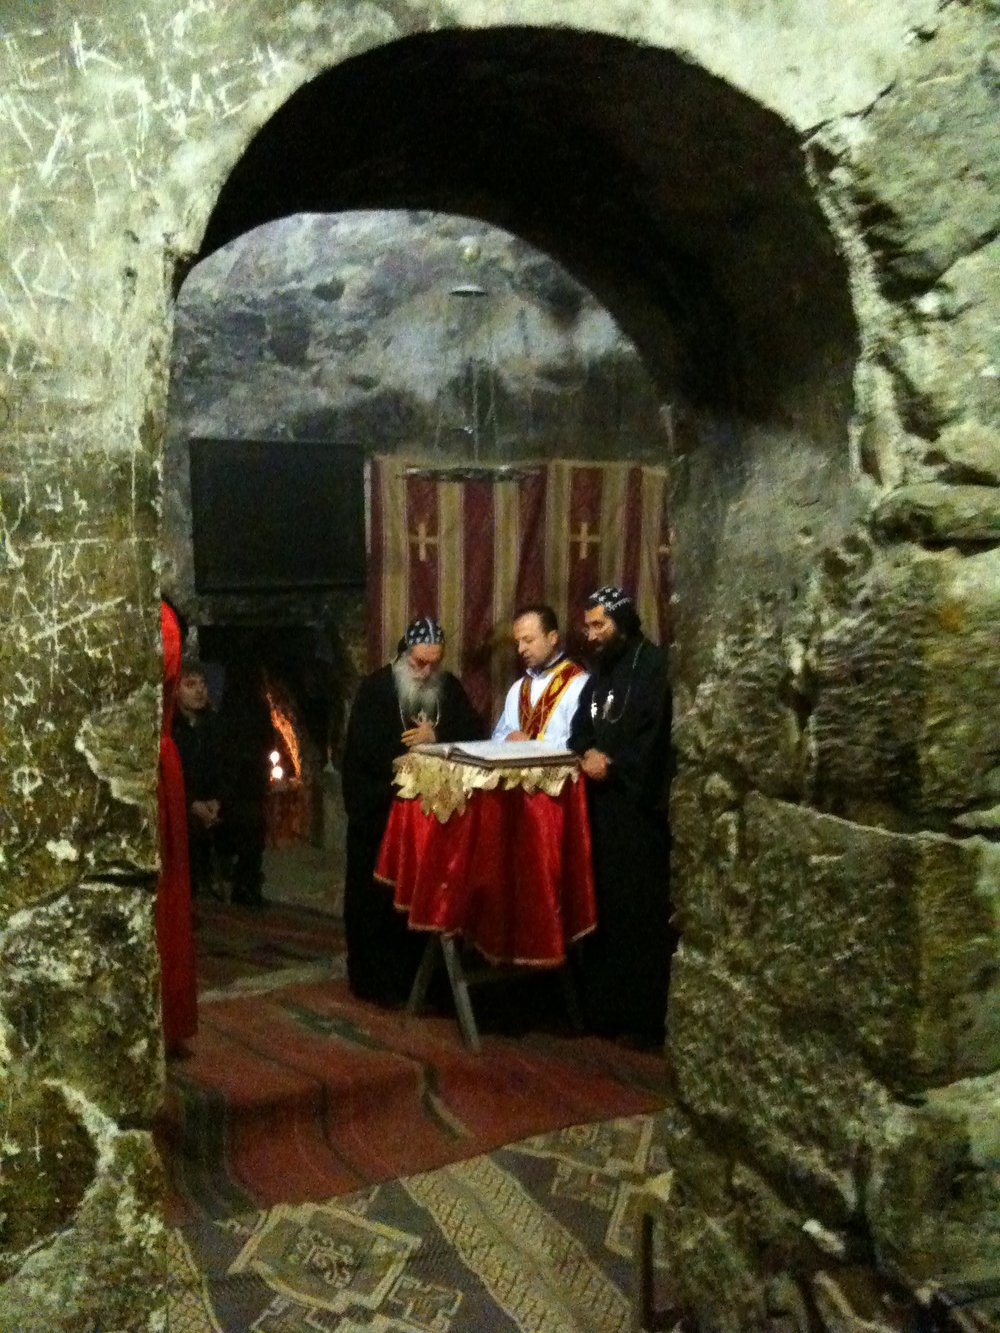 Sunday Liturgy in the Syrian Orthodox Chapel behind the Tomb of Christ